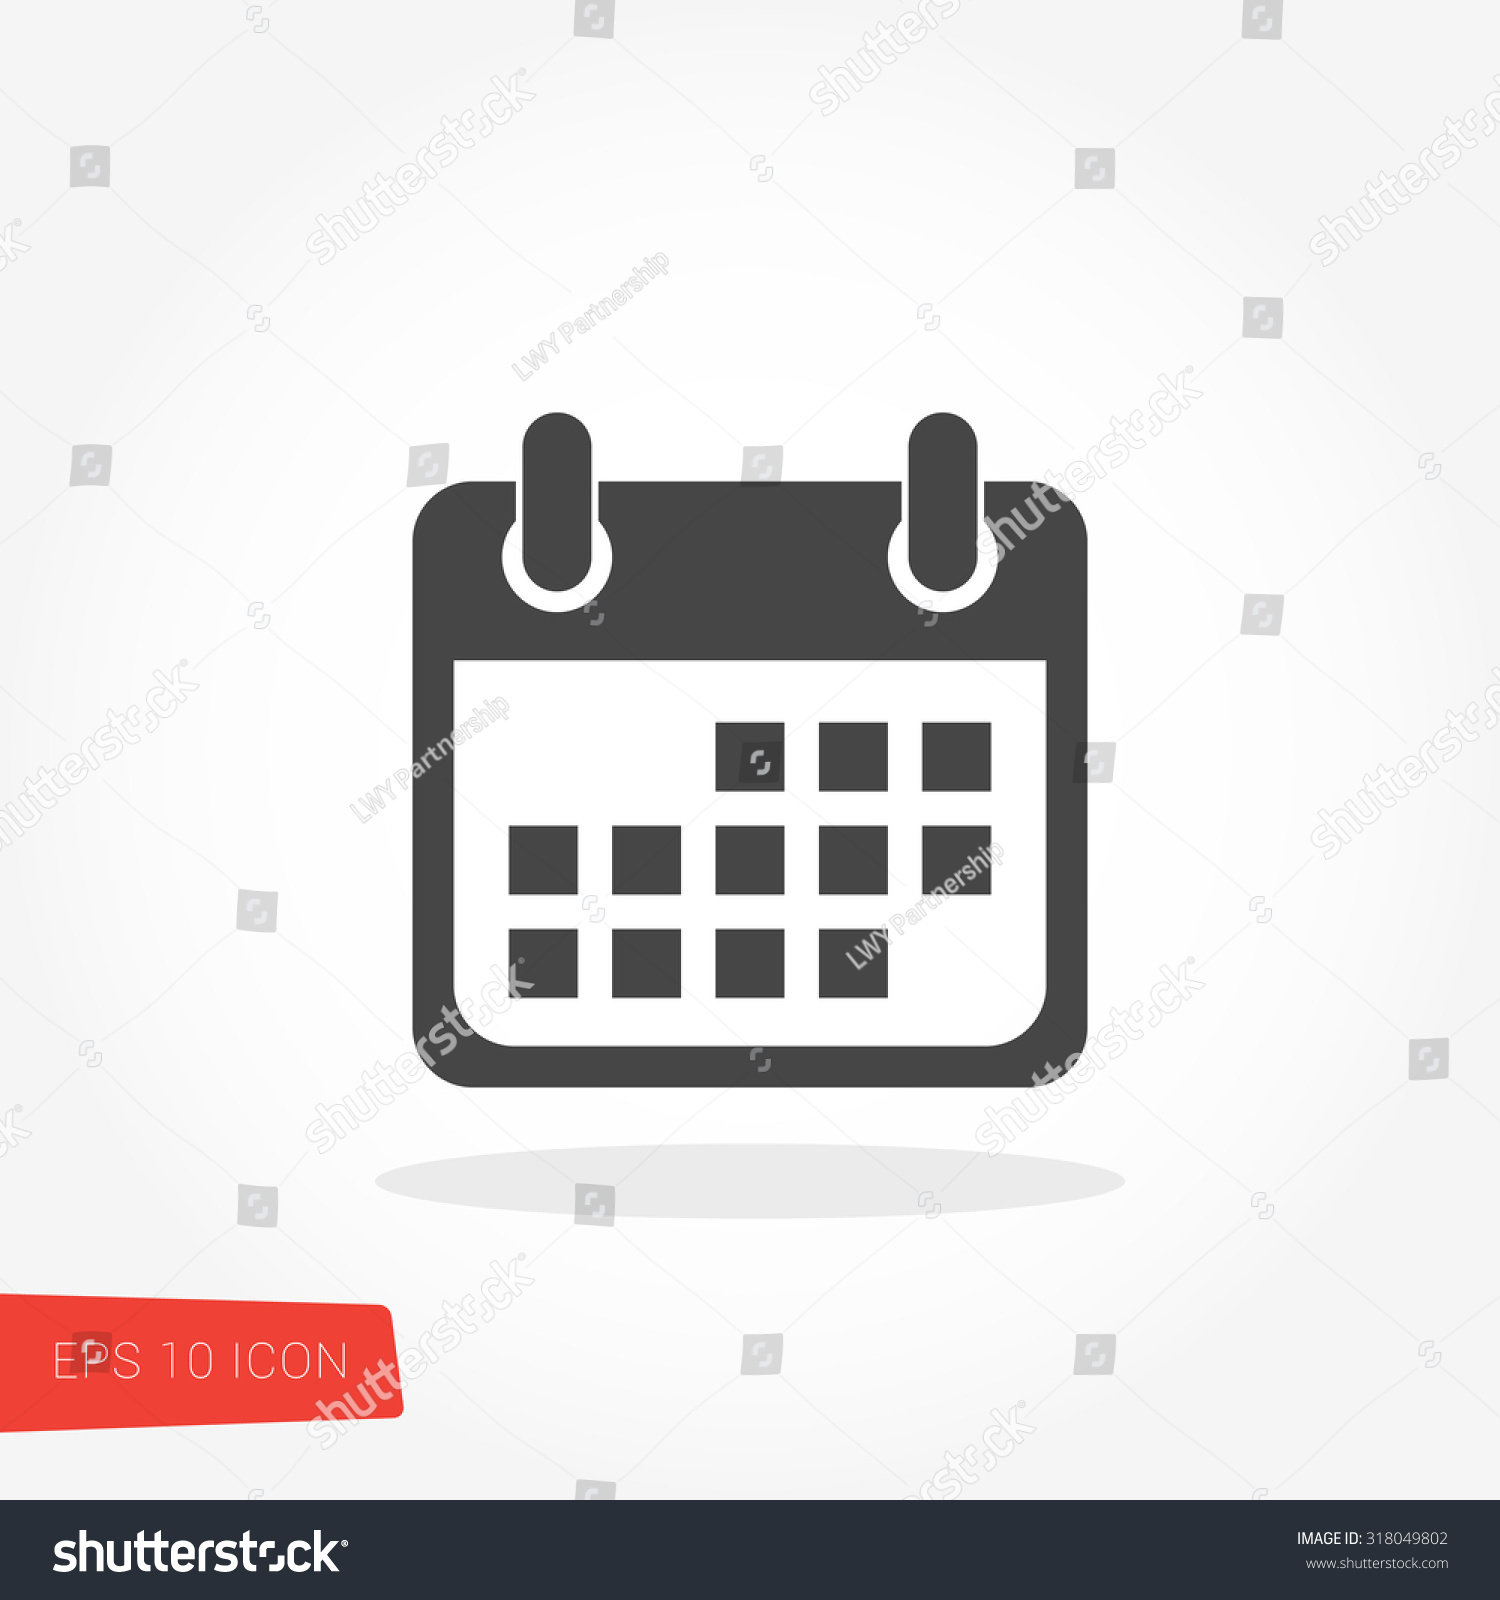 Calendar Graphic Icon : Calendar icon vector